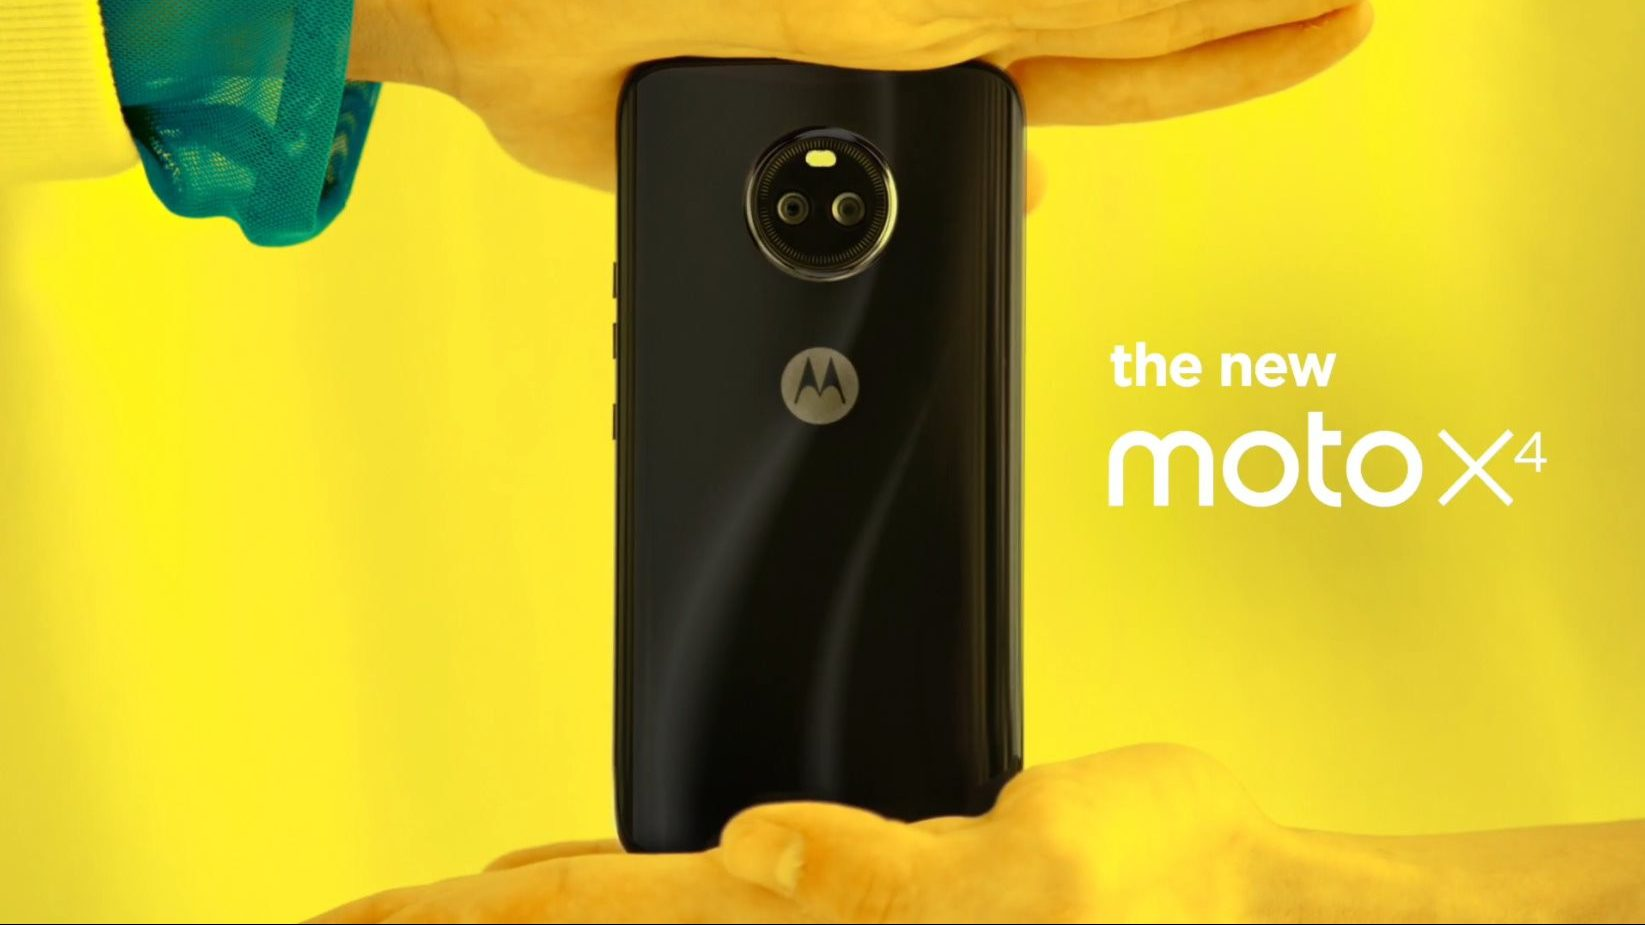 Motorola just leaked the Moto X4 hours before the official reveal